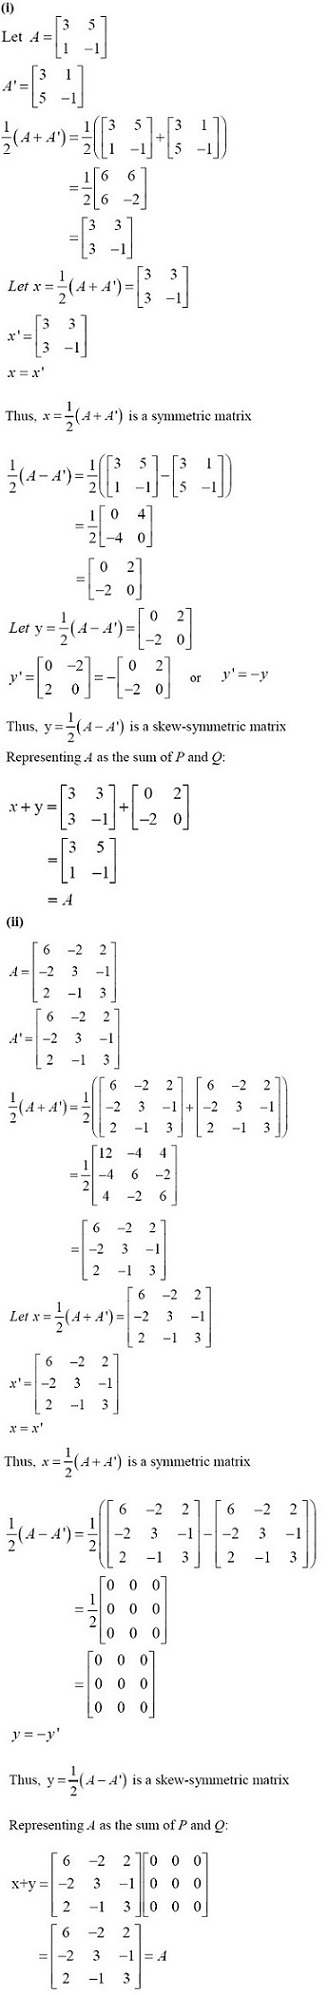 NCERT Solutions for CBSE Class 12 Mathematics ‒ Chapter 3: Matrices (Exercise 3.3, Solution 10 i & ii)